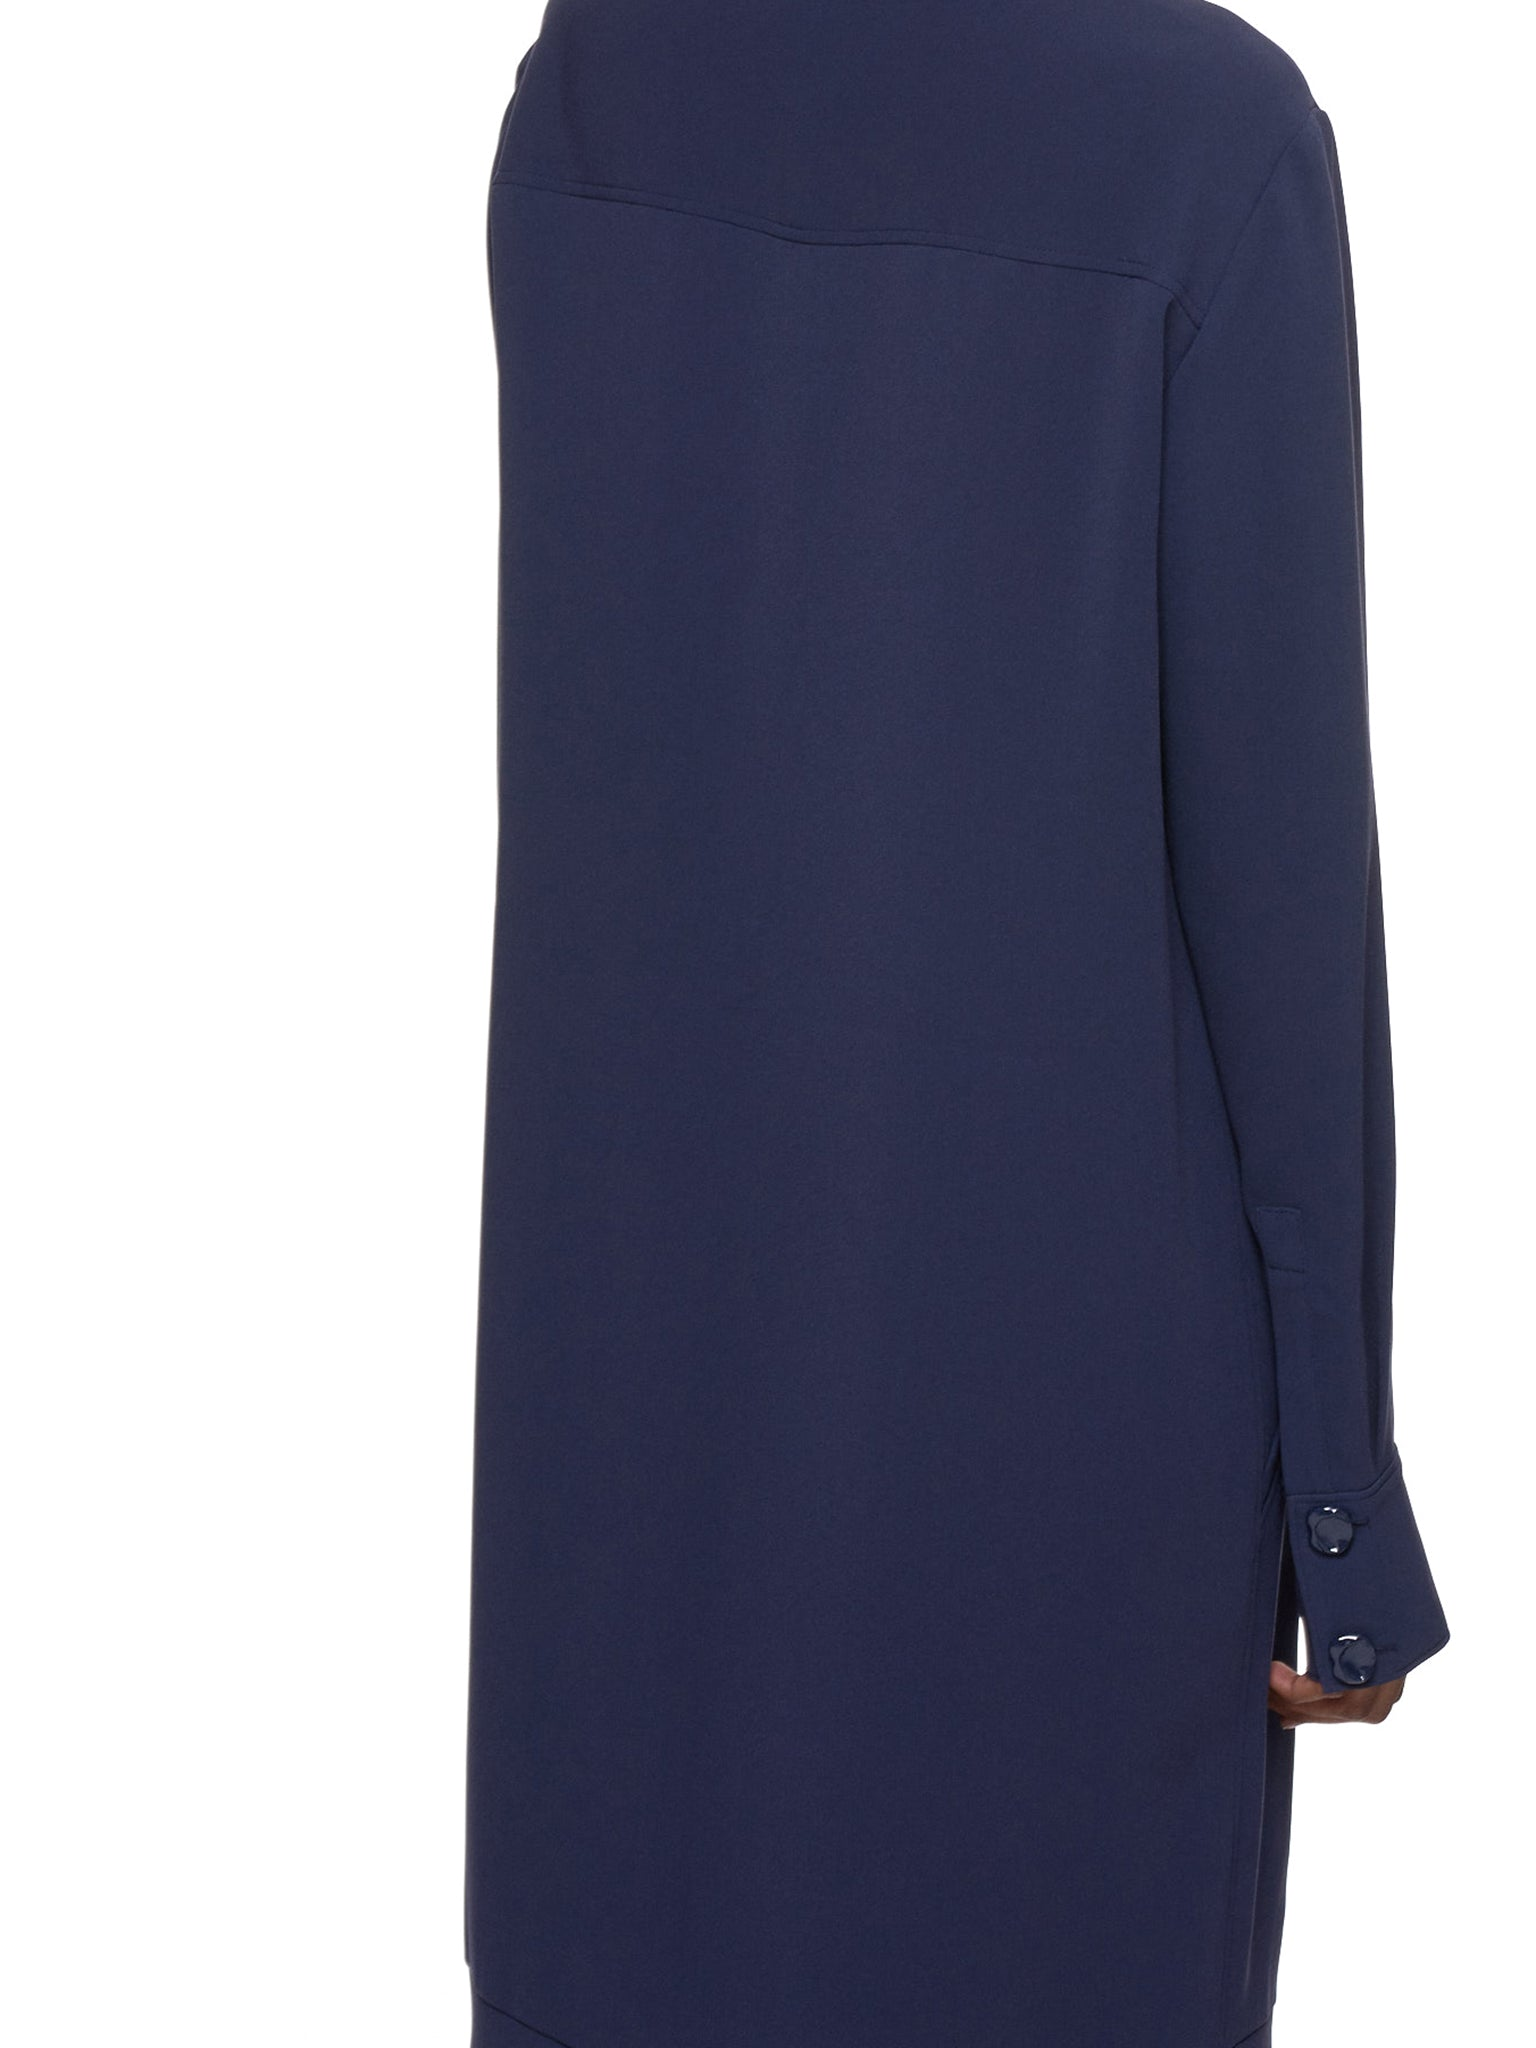 Tibi Dress - Hlorenzo Detail 1